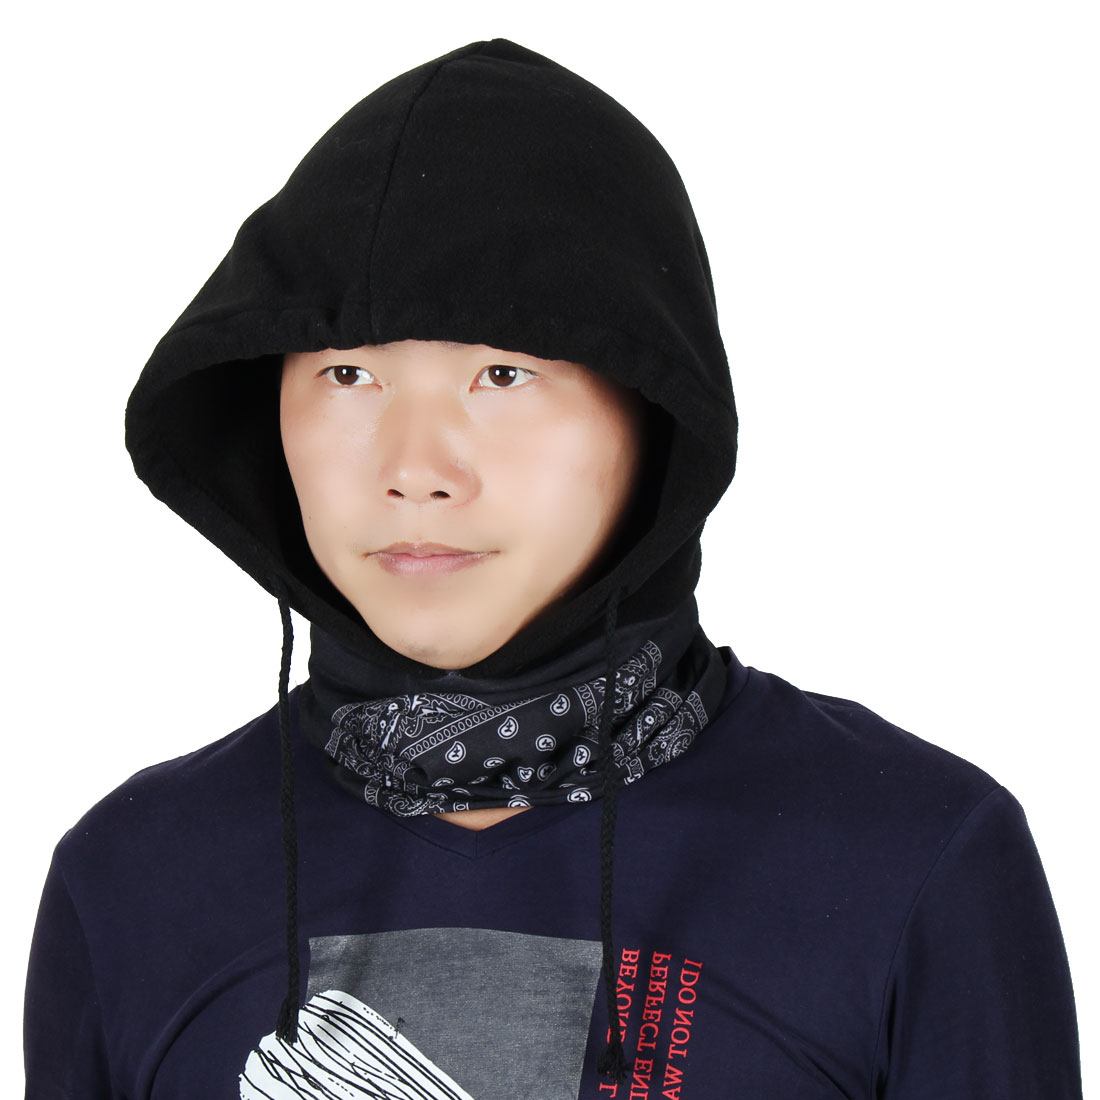 Fleece Fish Pattern Face Mask Riding Double Layer Neck Protector Balaclava Black by Unique-Bargains